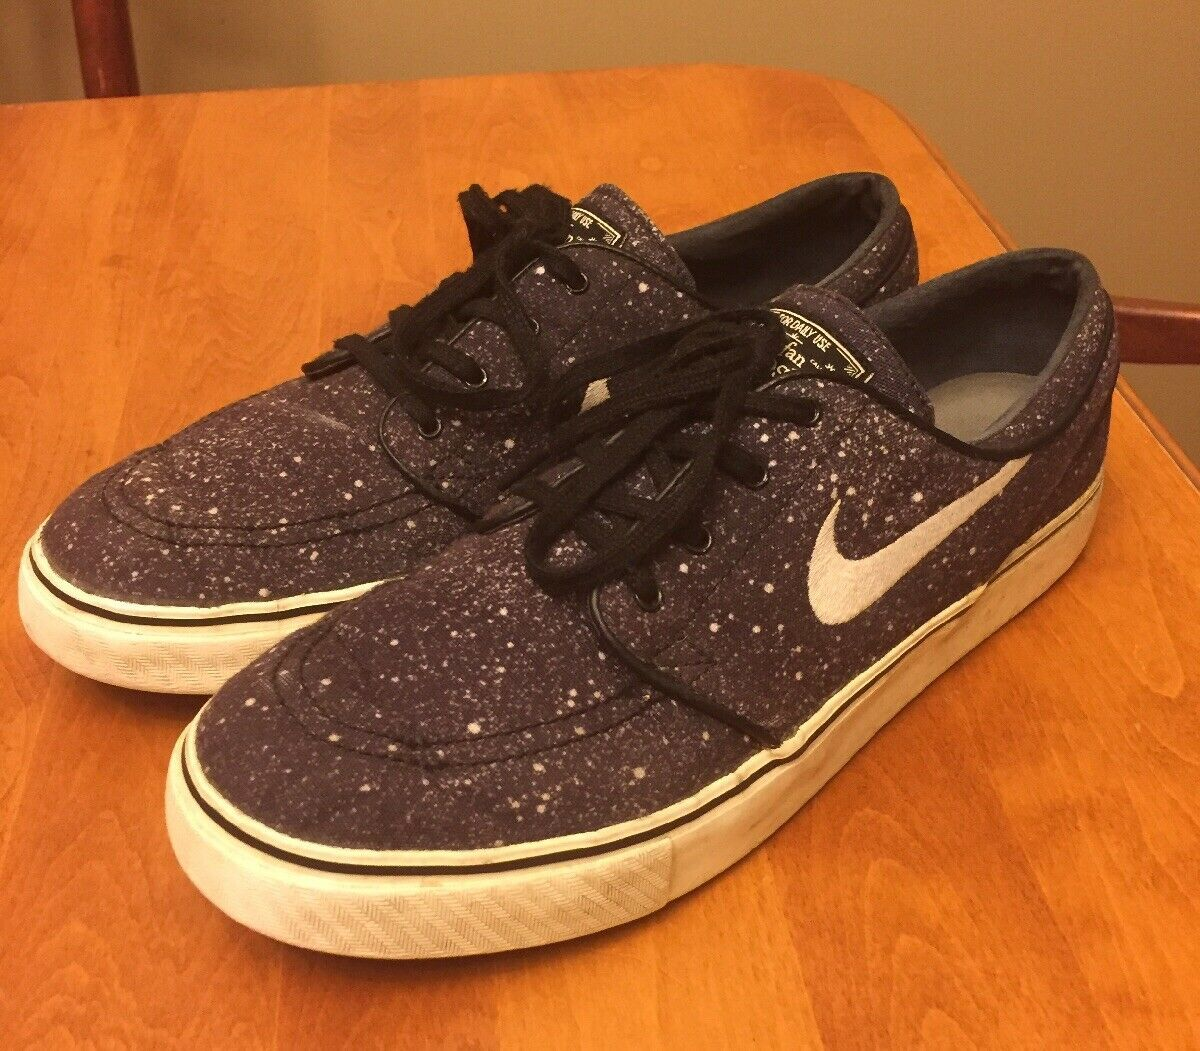 Primary image for Nike SB Zoom Stefan Janoski Galaxy Print Size 10 Running Shoes USED Sneakers